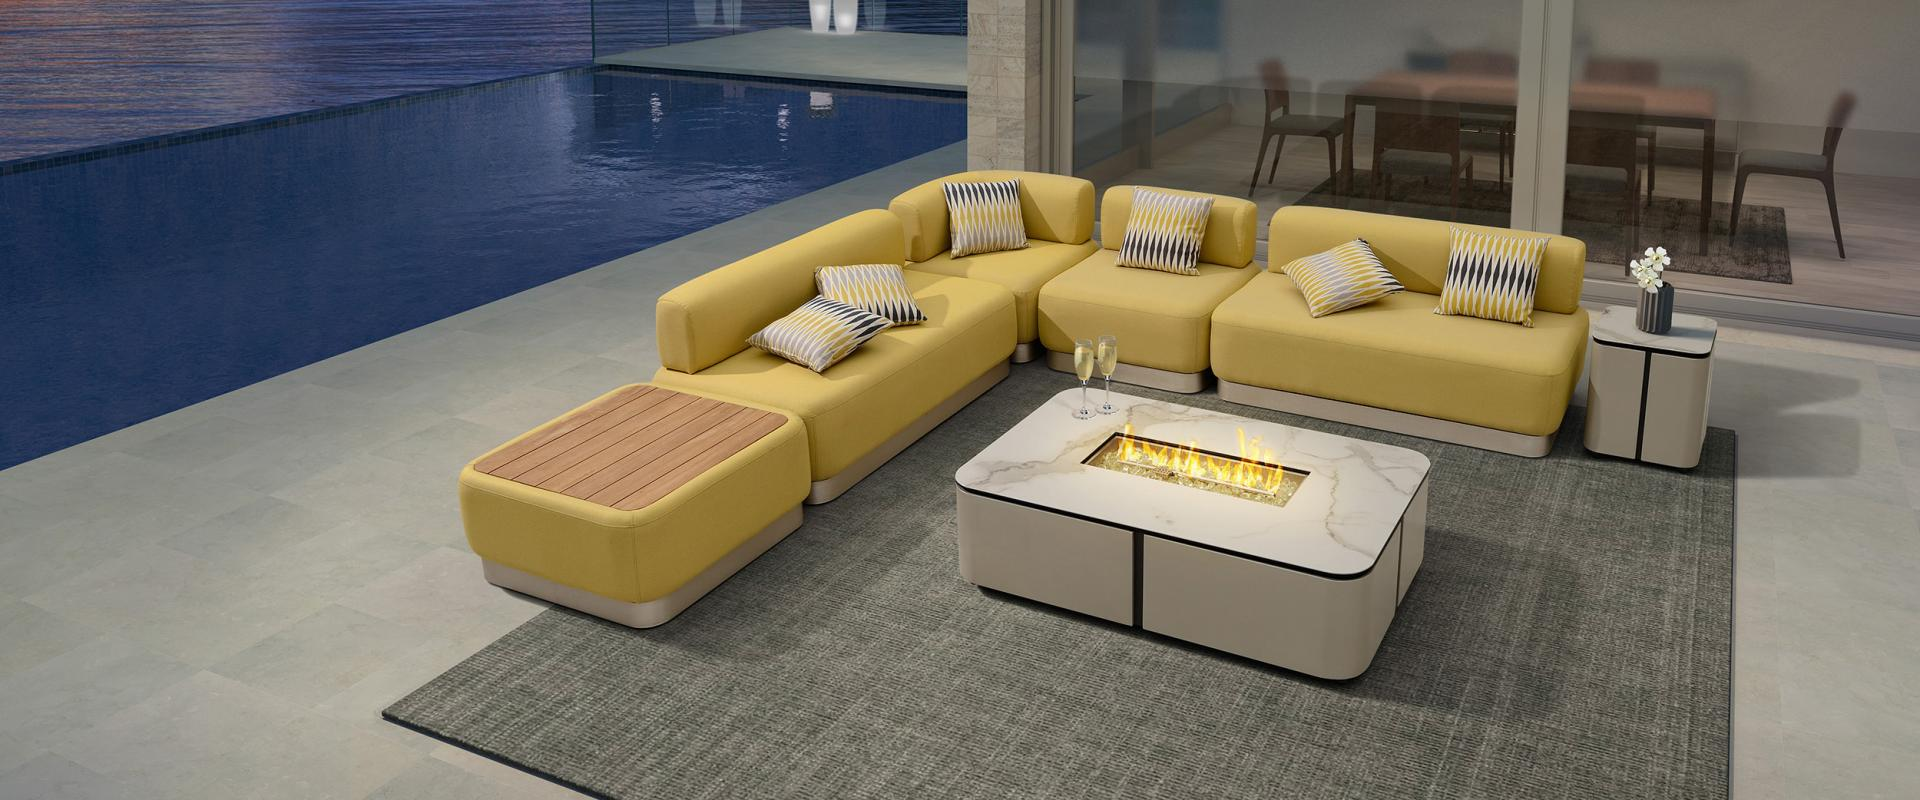 sectional sofa patio